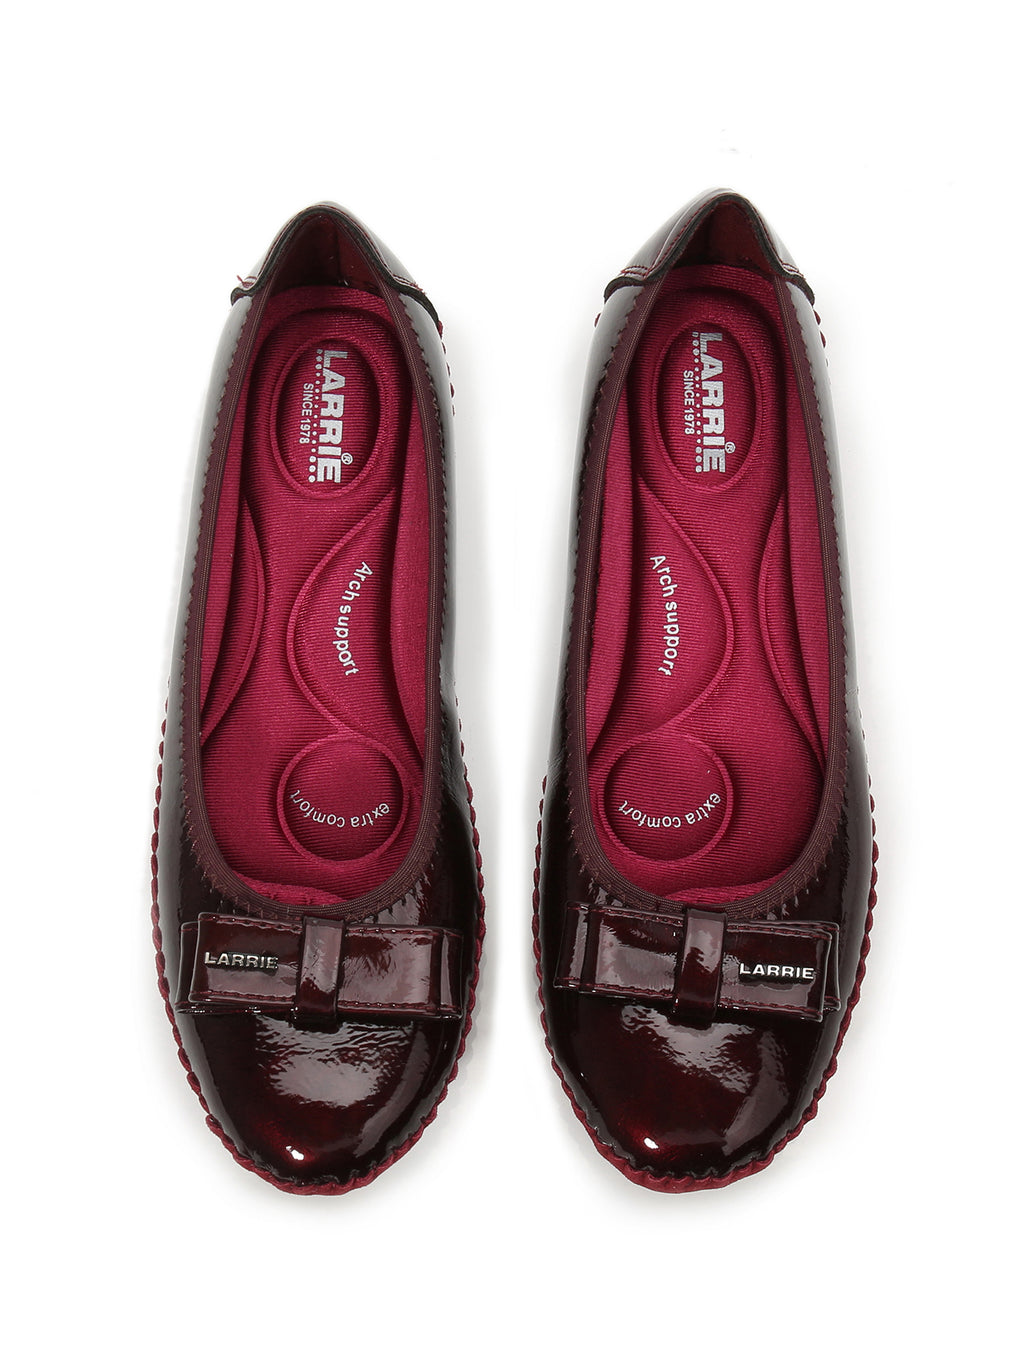 Larrie Red Simplicity Comfortable Ballerinas Flats L41901-WS01SV-2-RED